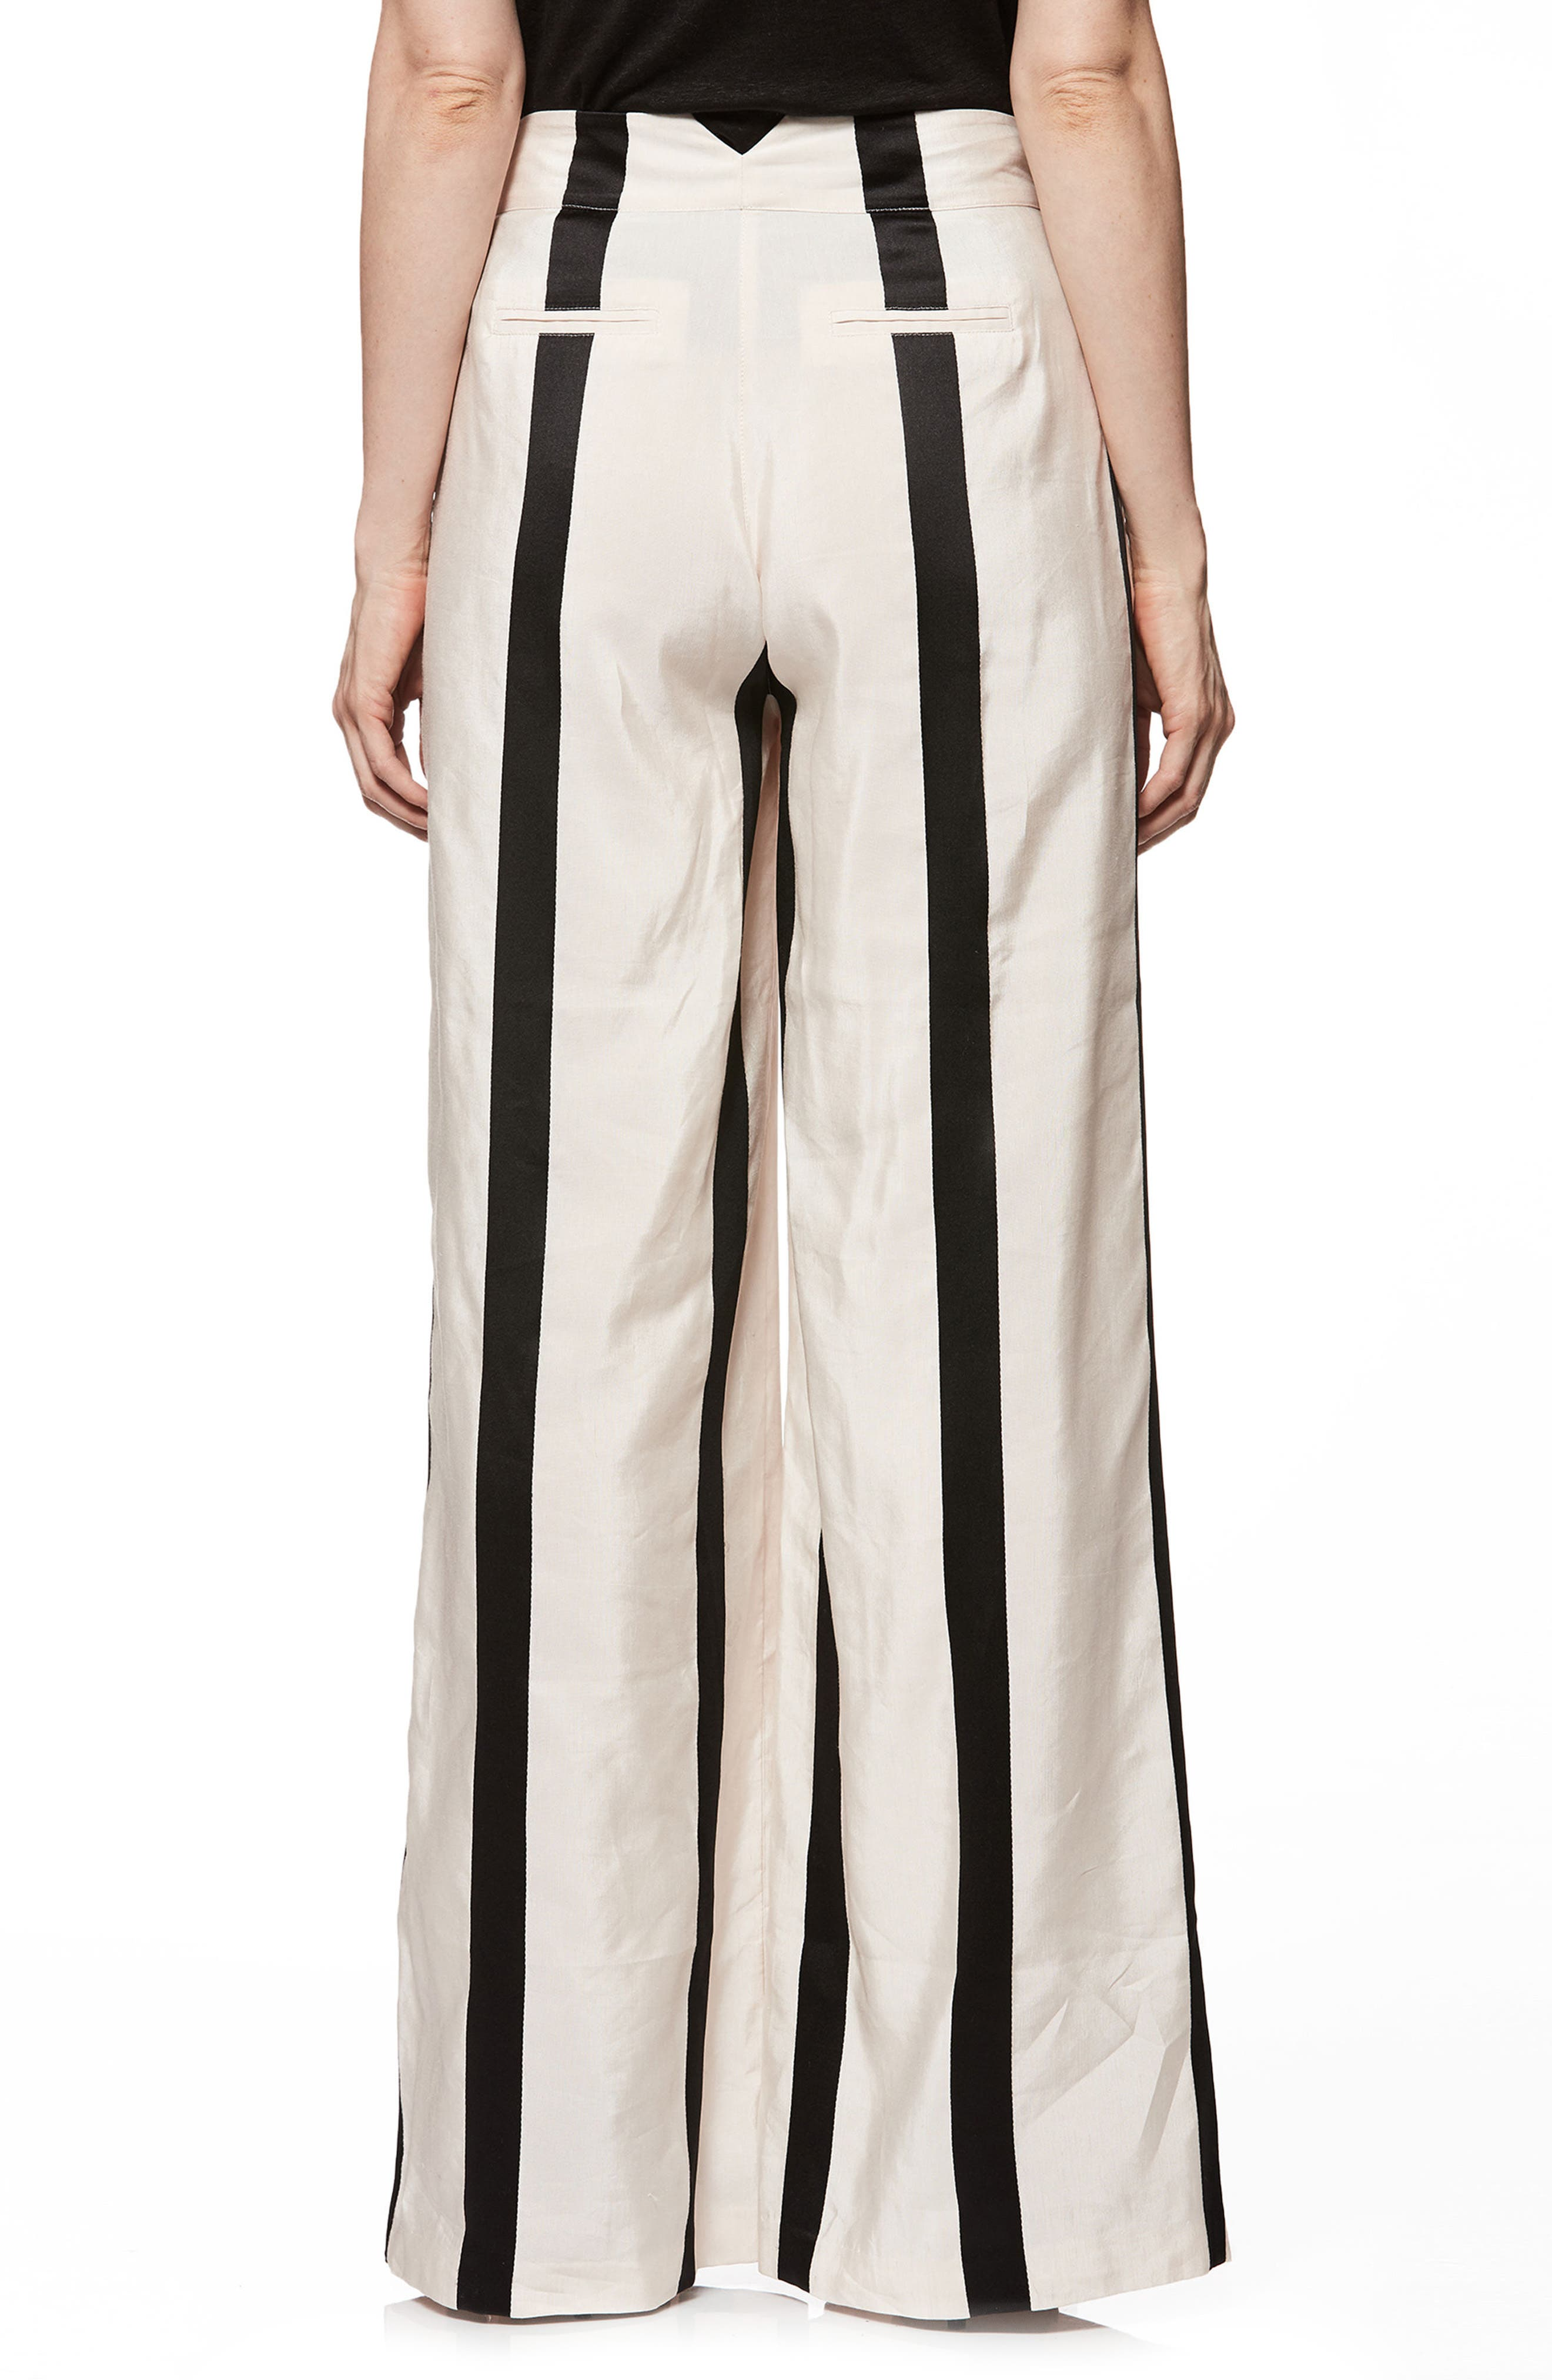 Capucine High Waist Wide Leg Pants,                             Alternate thumbnail 2, color,                             BLUSH WITH BLACK